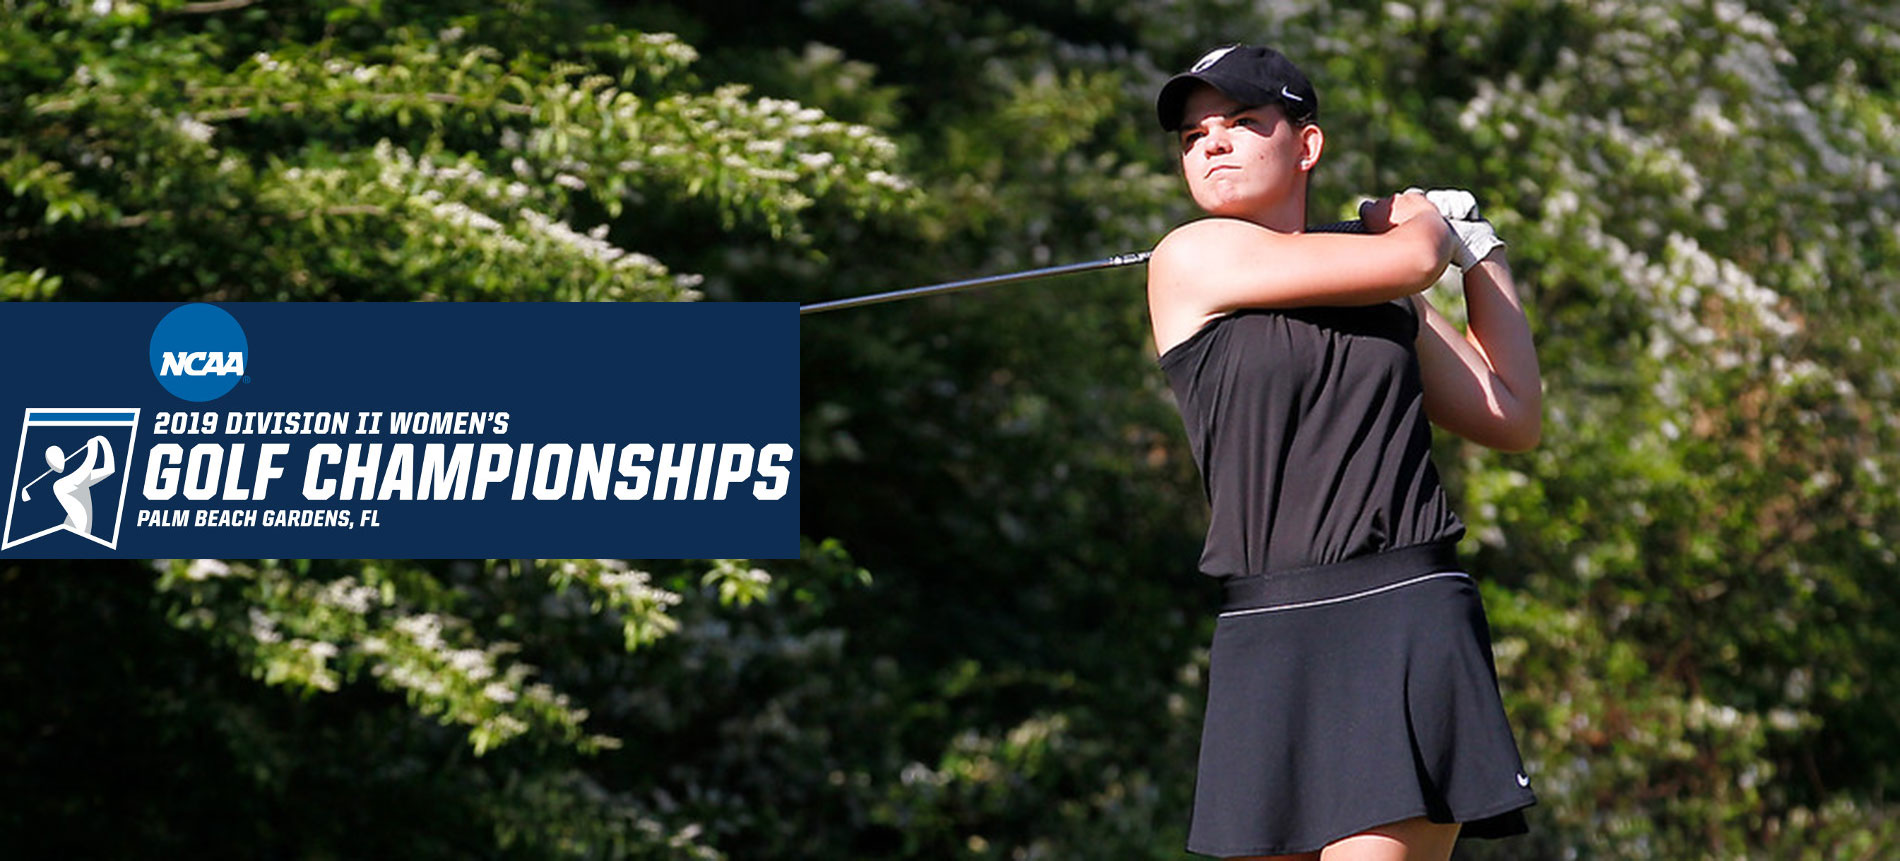 Hall Wraps up NCAA Women's Golf Championships Tied for 72nd